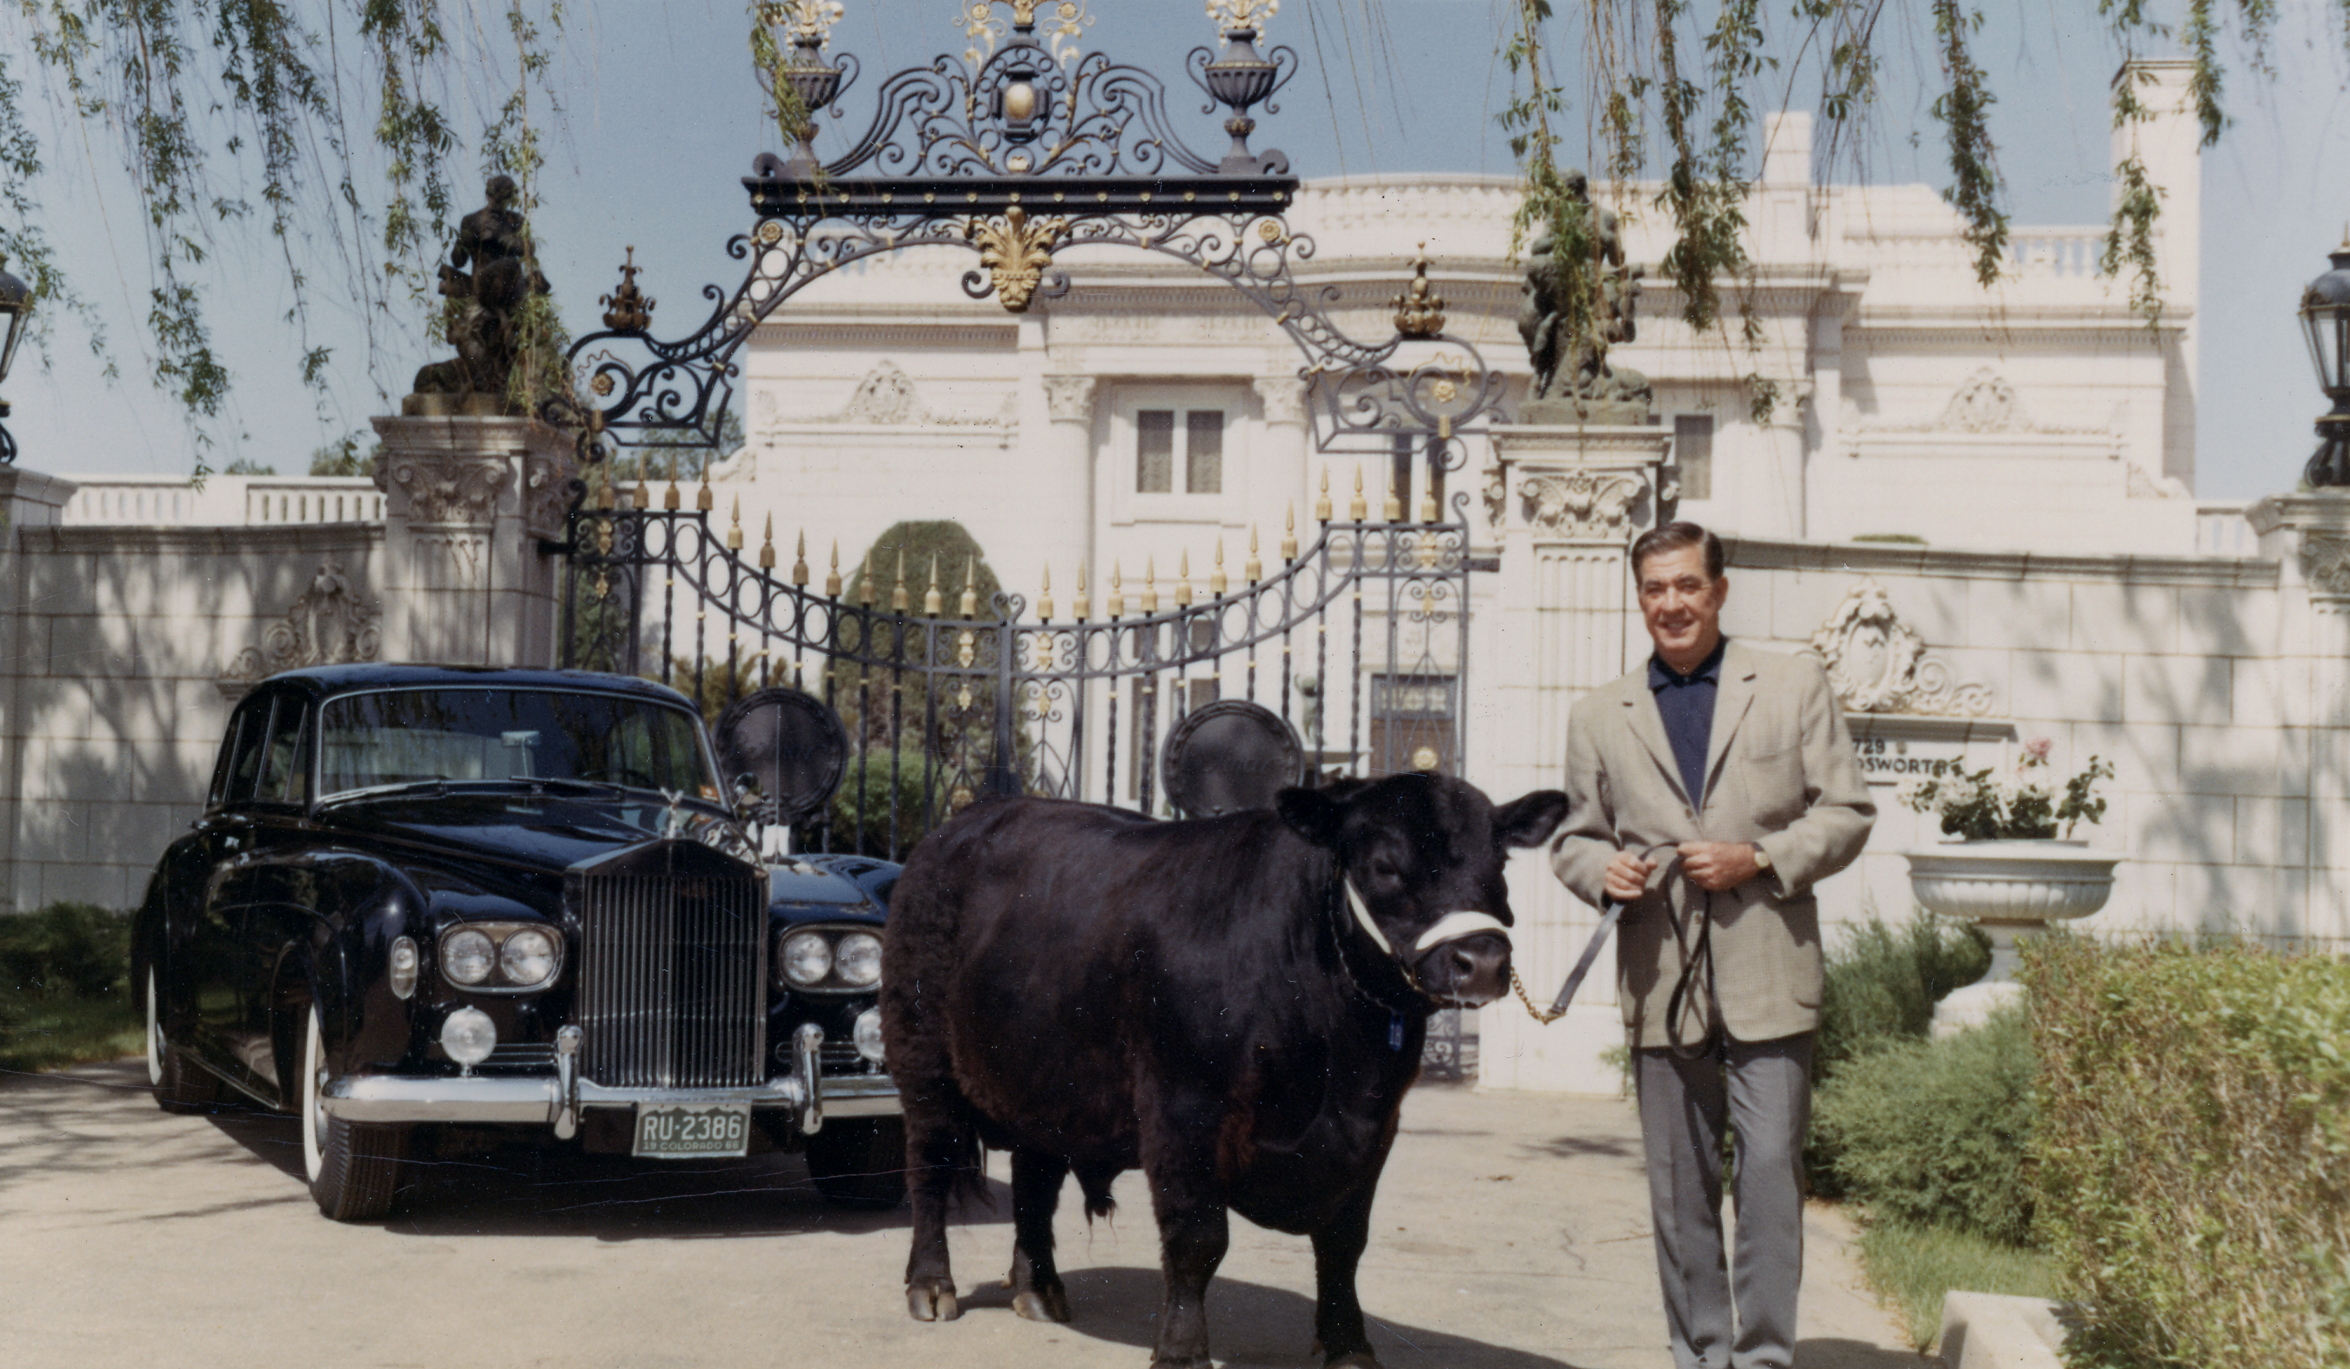 Ed Stanton with Steer and Rolls Royce